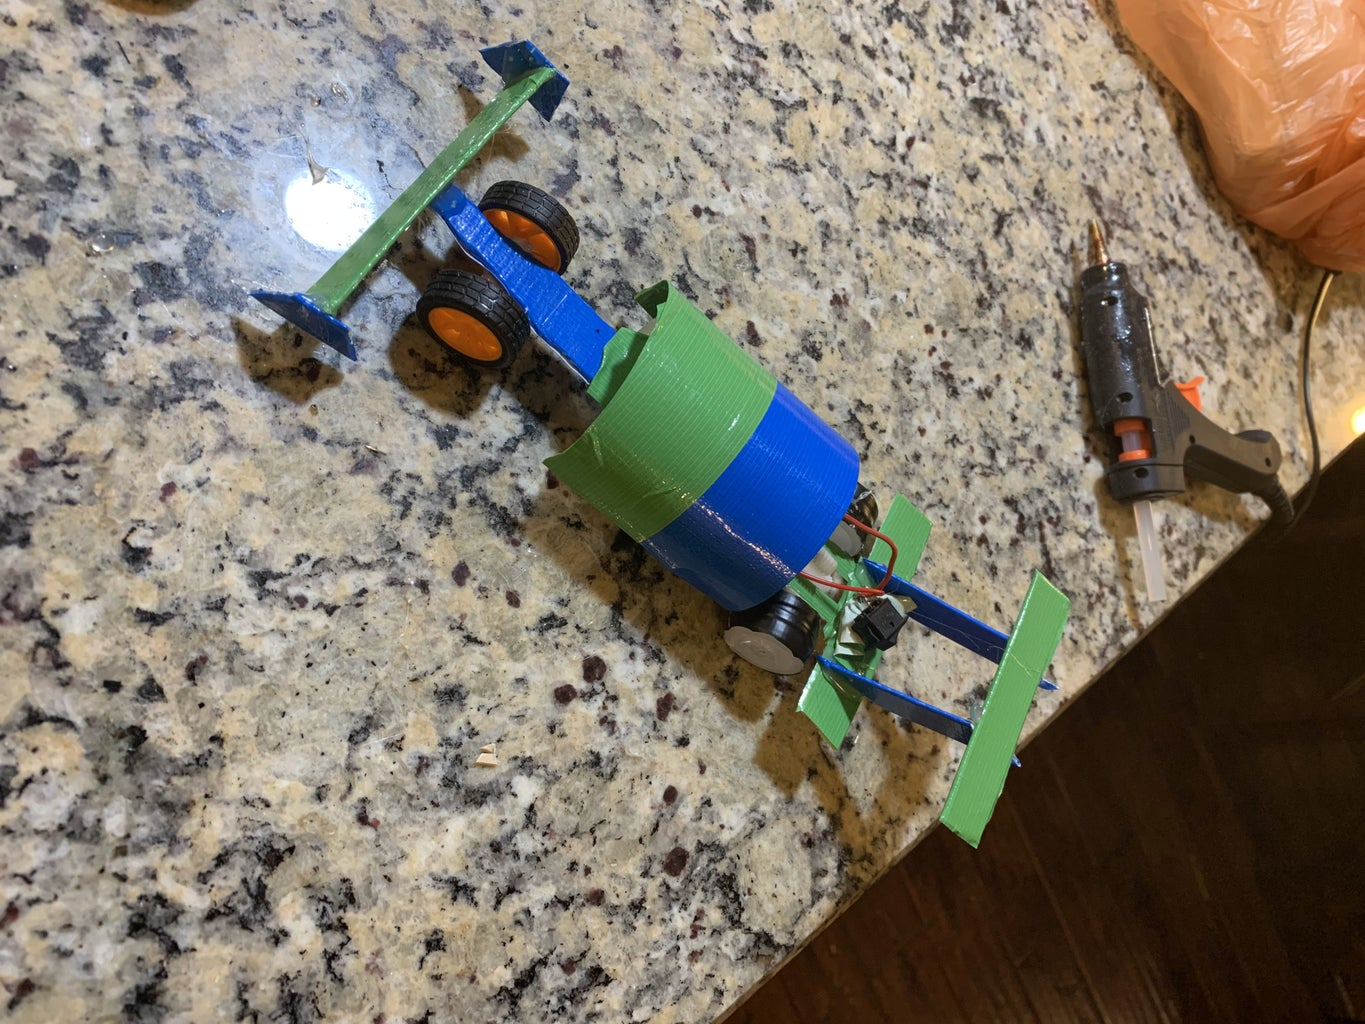 Moving Race Car Using Duct Tape and Popsicle Sticks